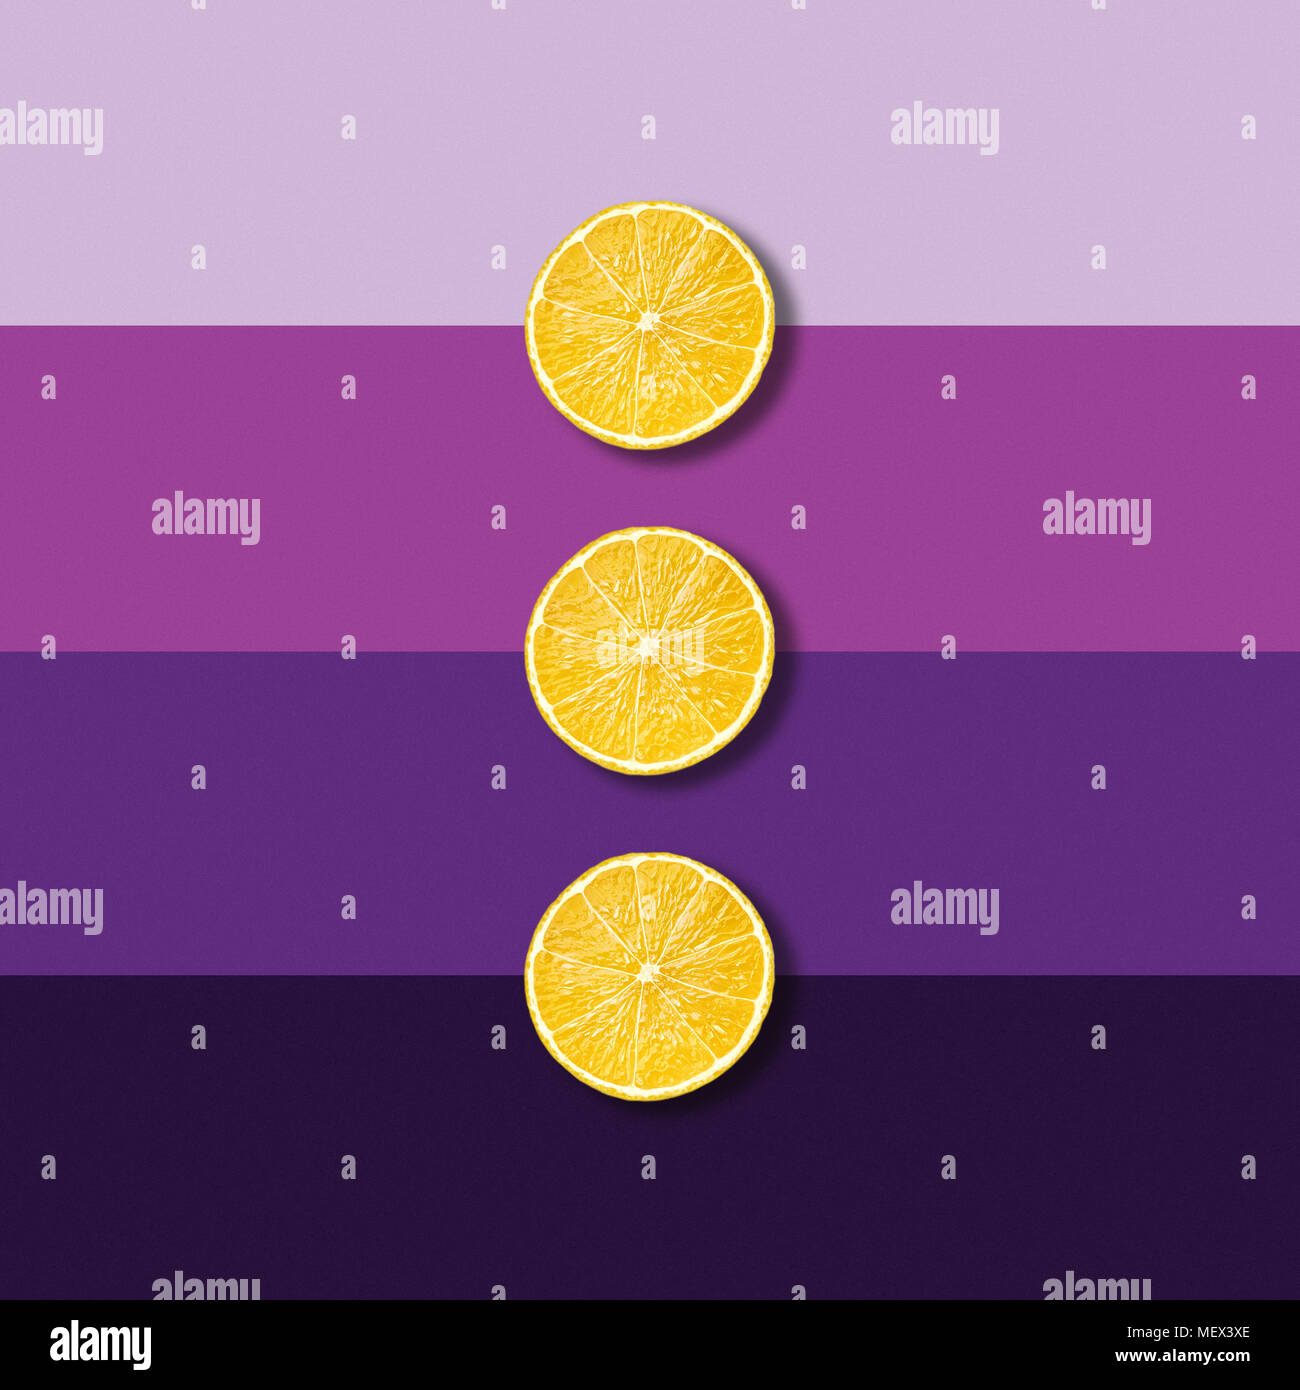 Three lemon fruit slices on electric purple background, abstract pop art picture - Stock Image